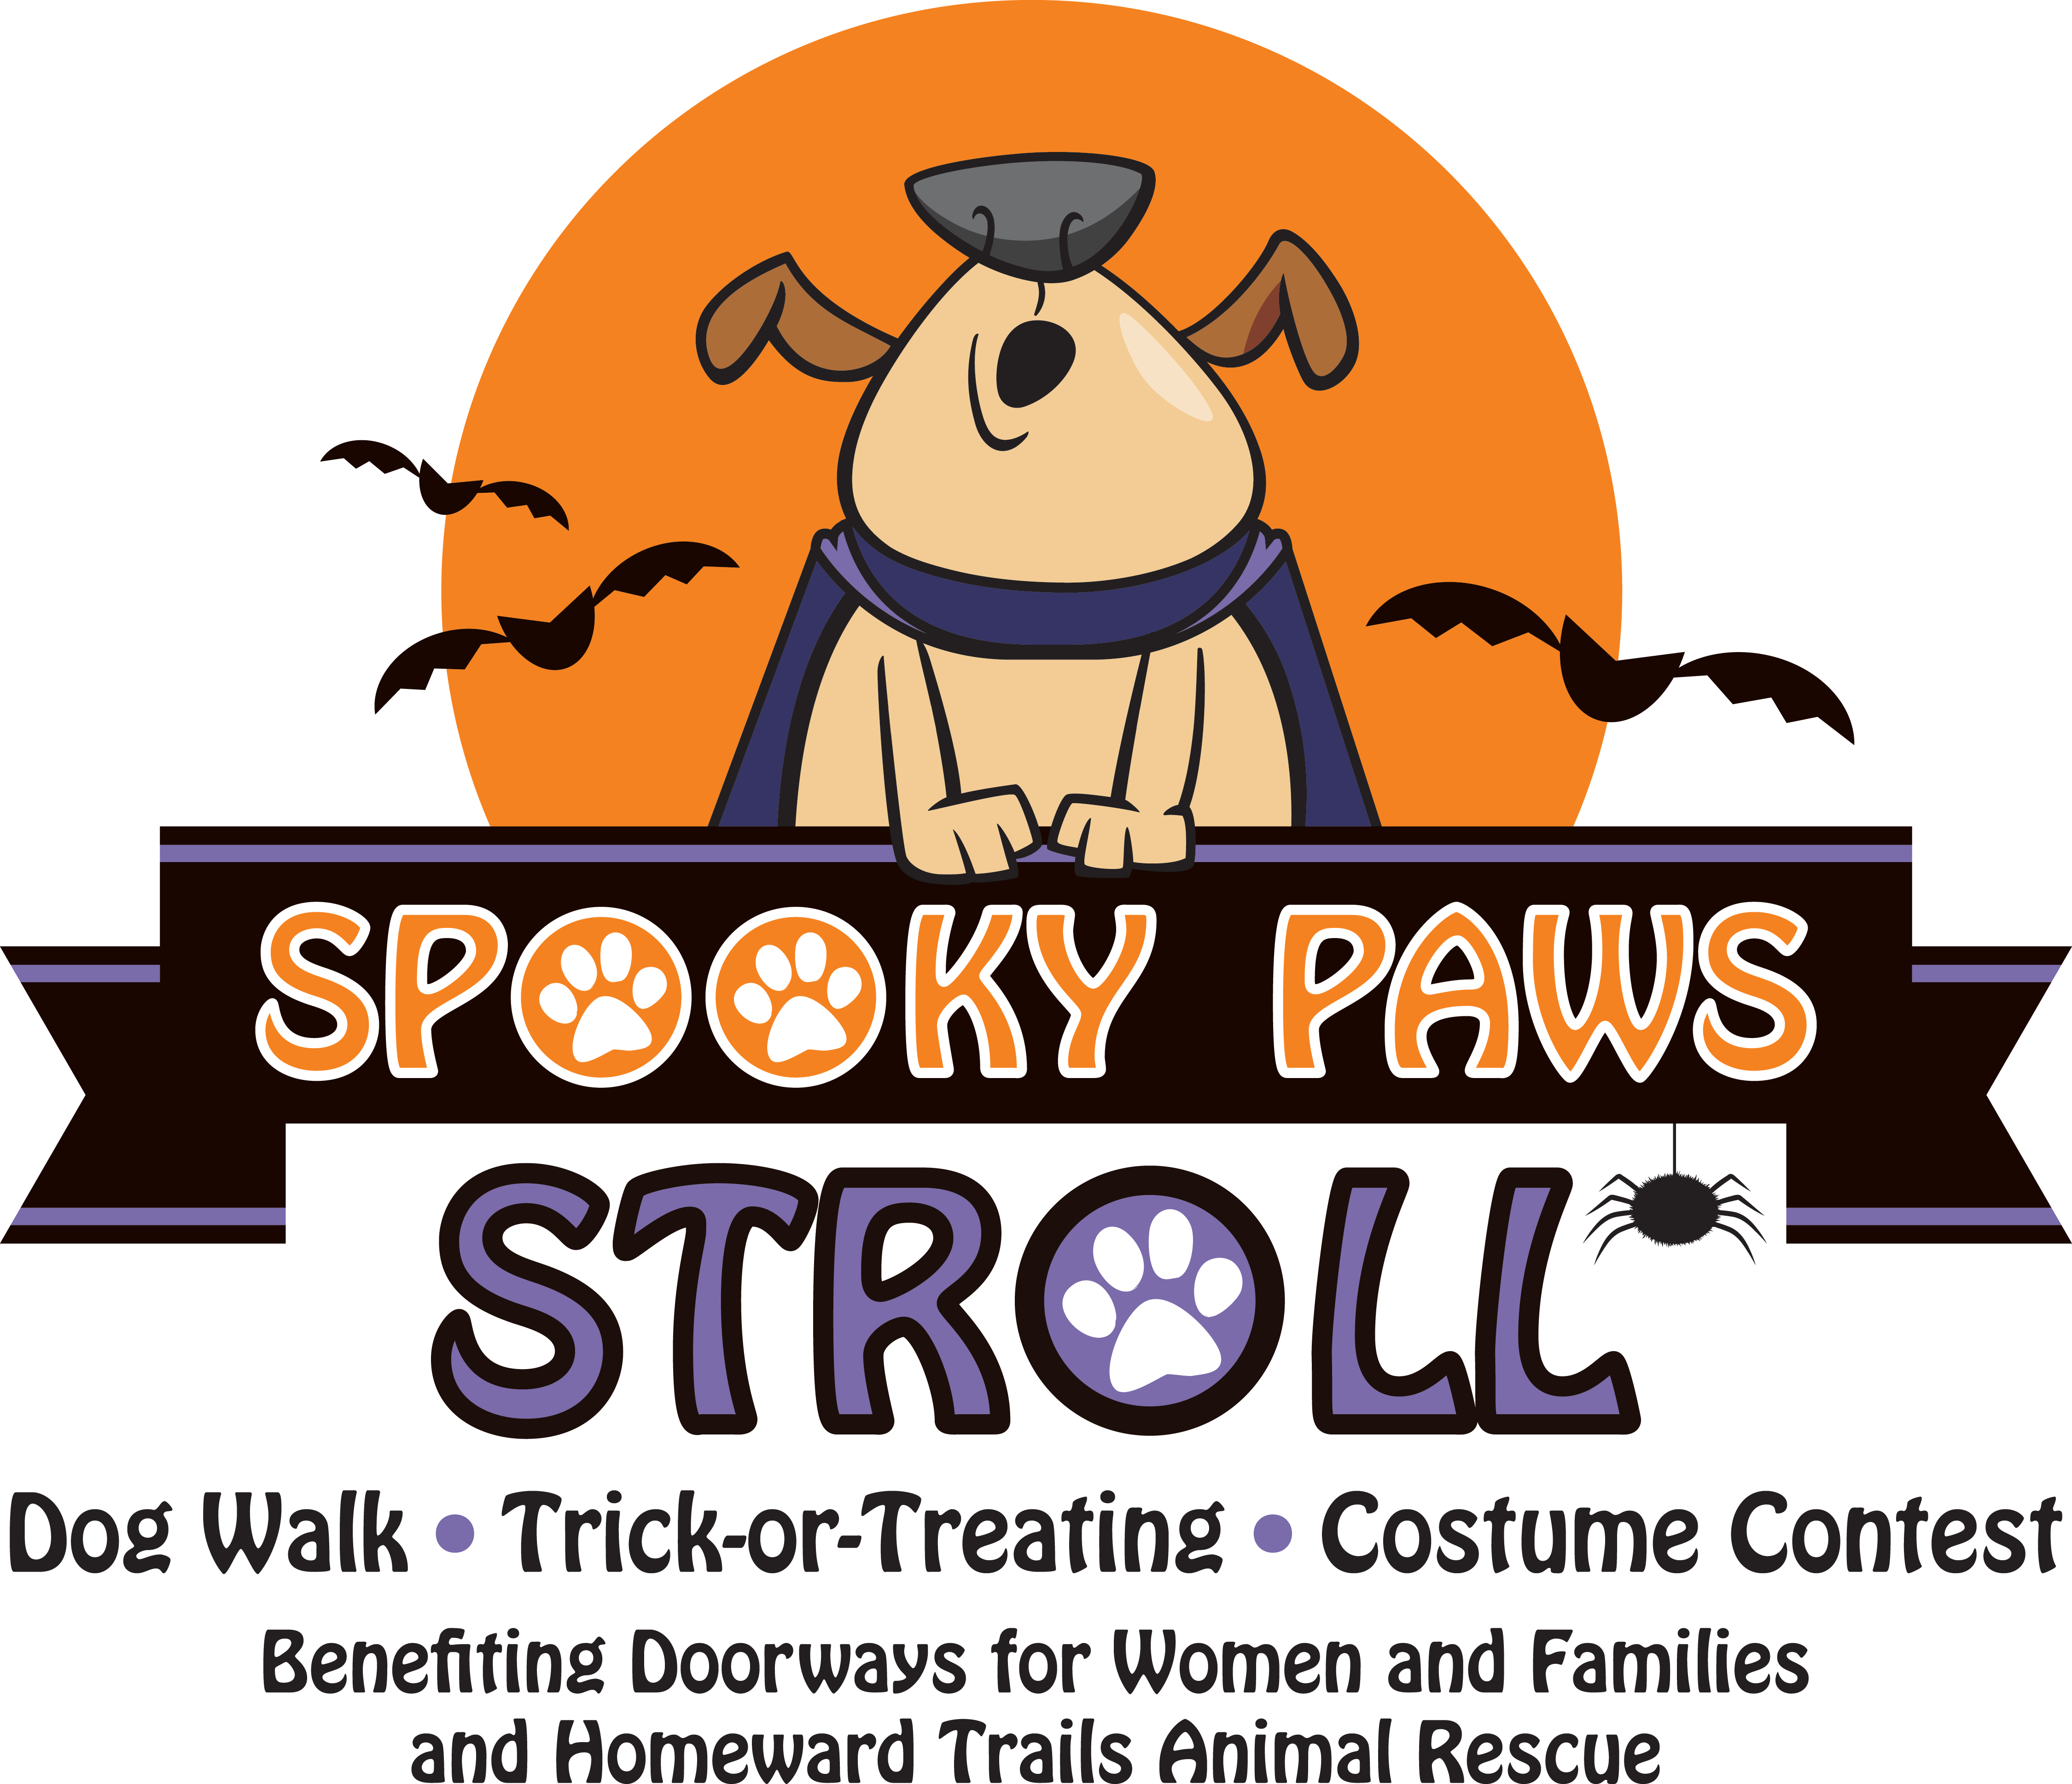 Win clipart doorways. Spooky paws stroll and